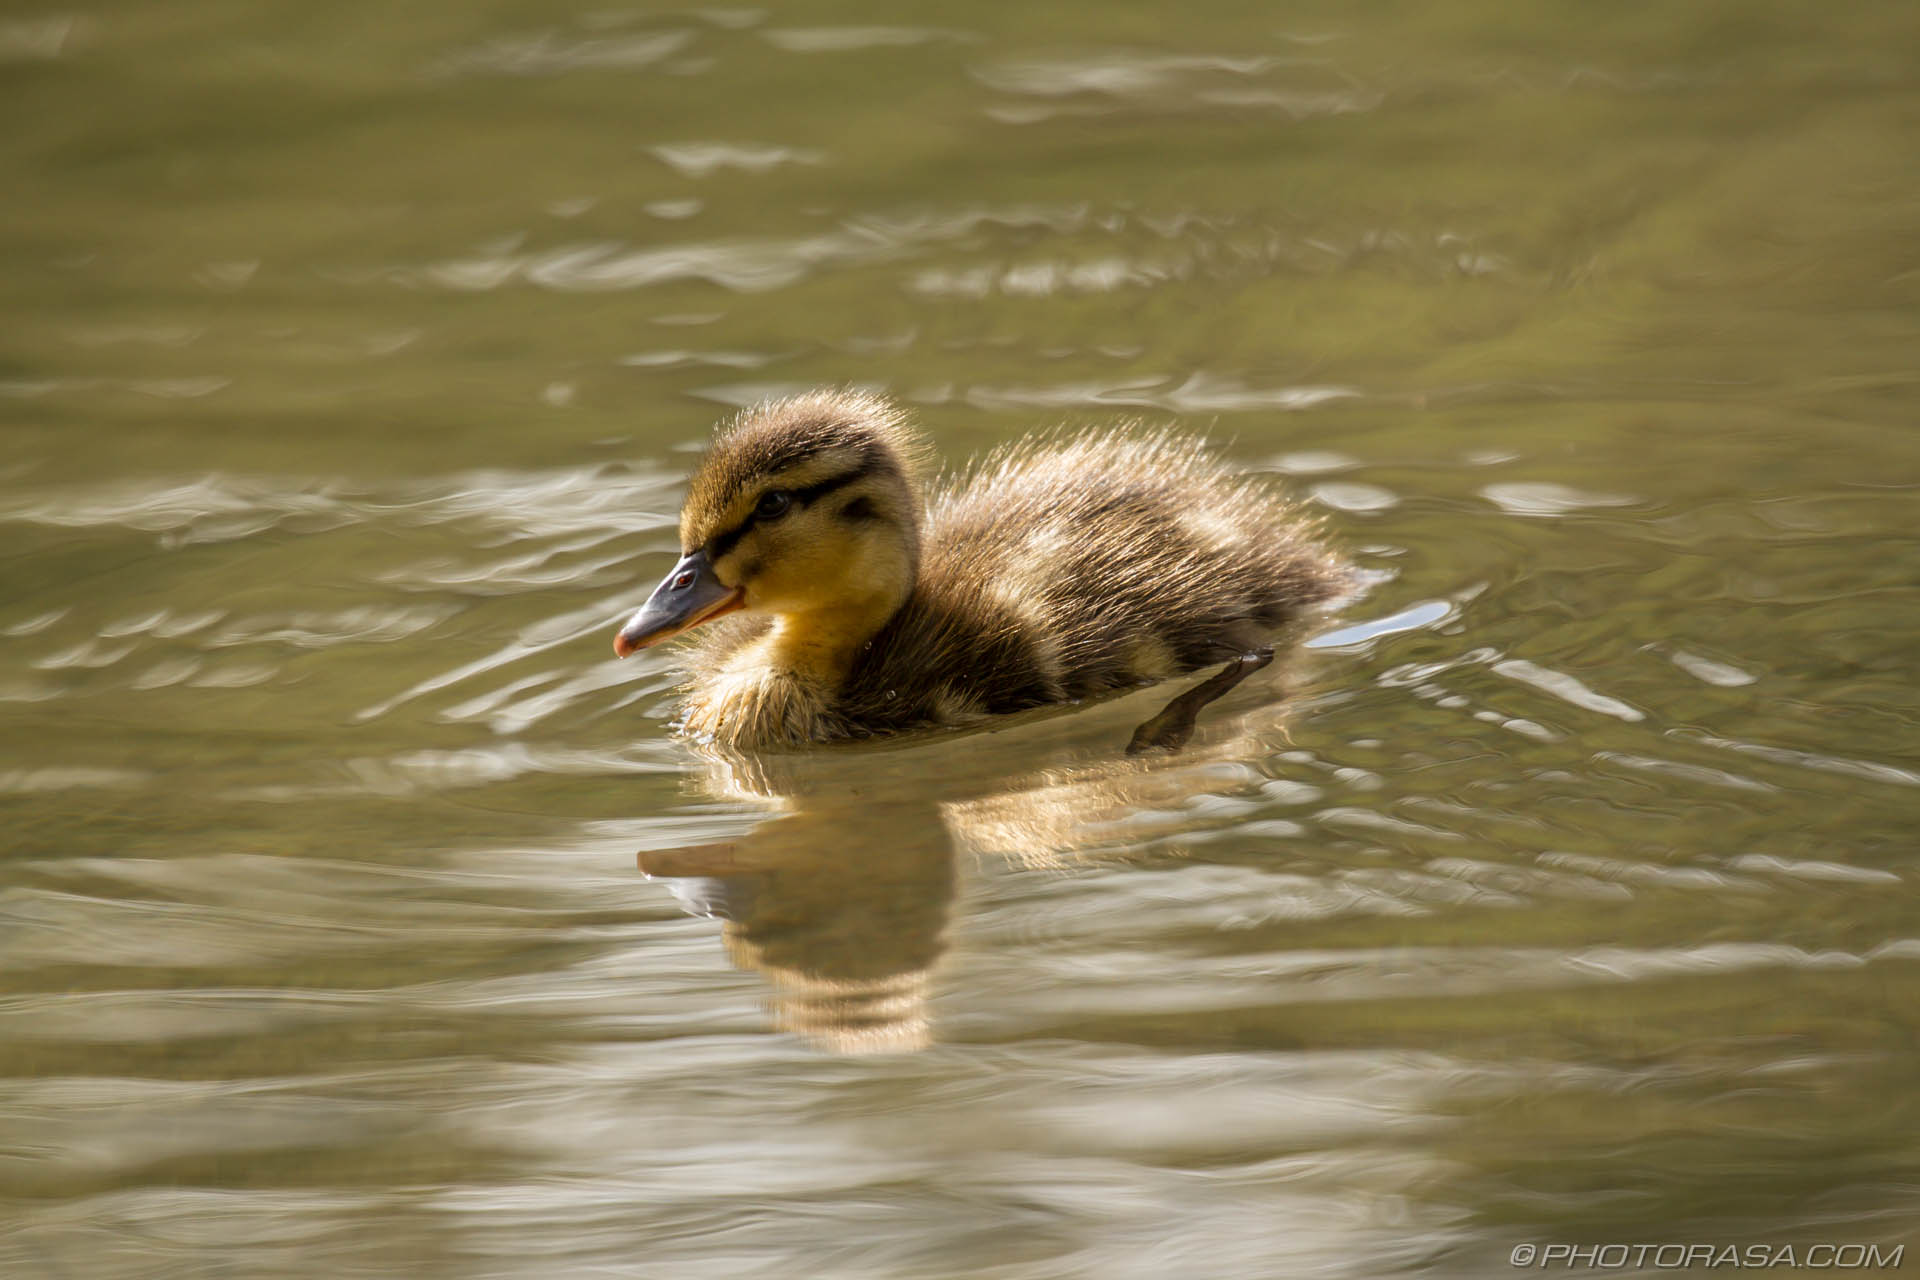 http://photorasa.com/mallard-ducks/paddling-baby-duck-in-sunlight/